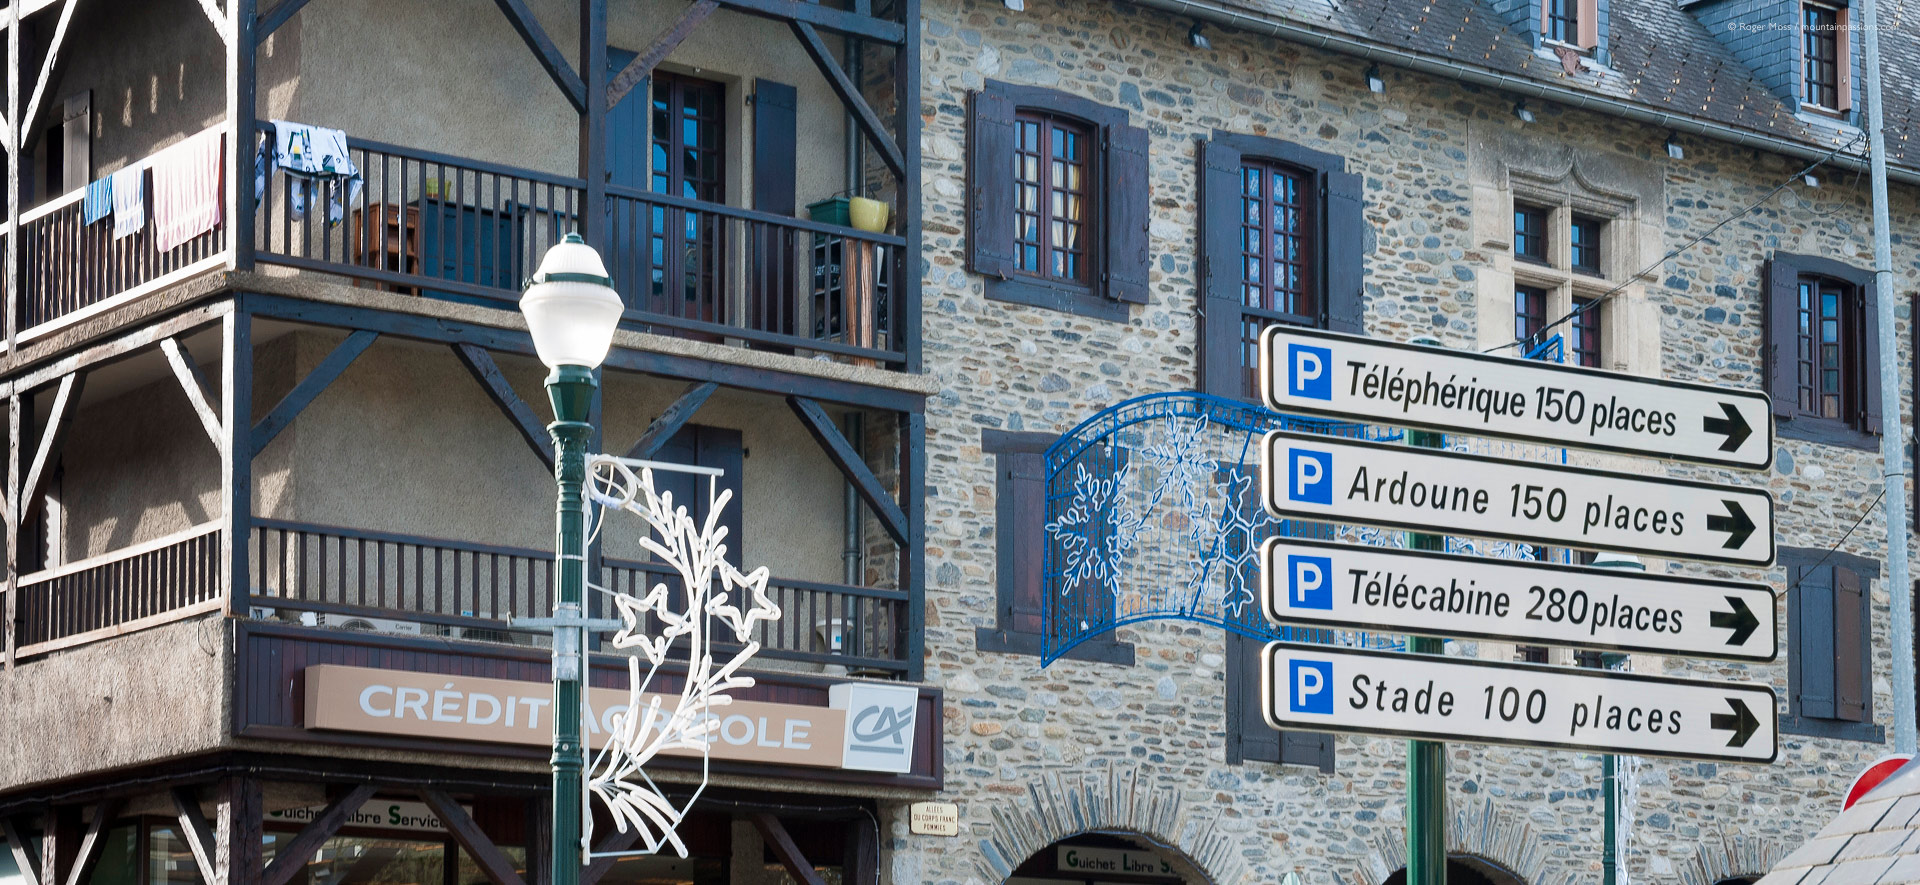 Low view of stone and timber facades, plus sign to ski lifts